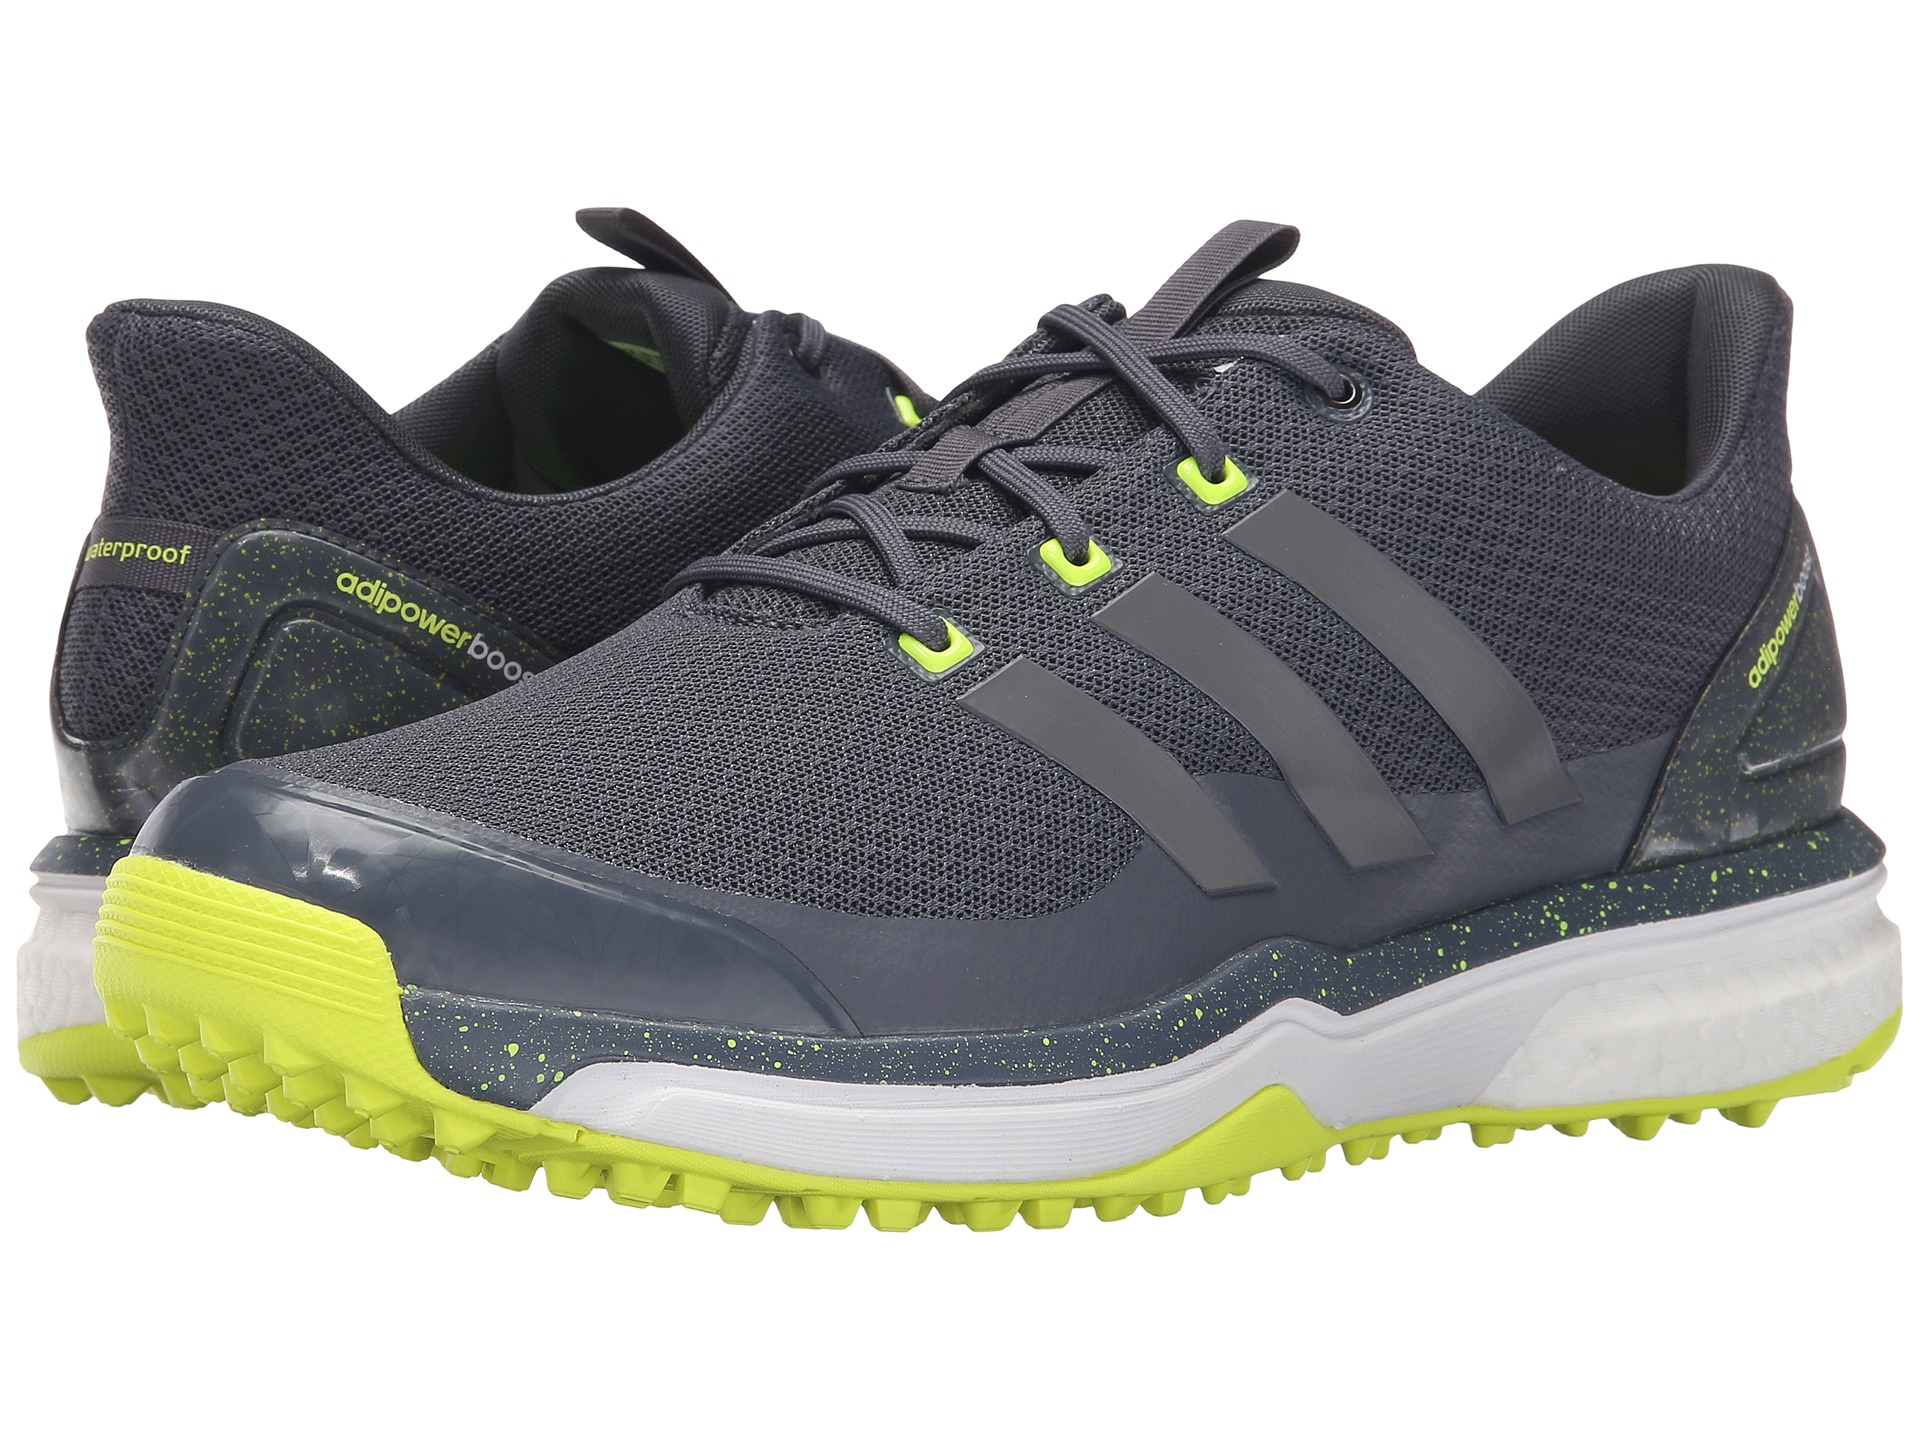 adidas Golf Adipower S Boost 2 at 6pm.com